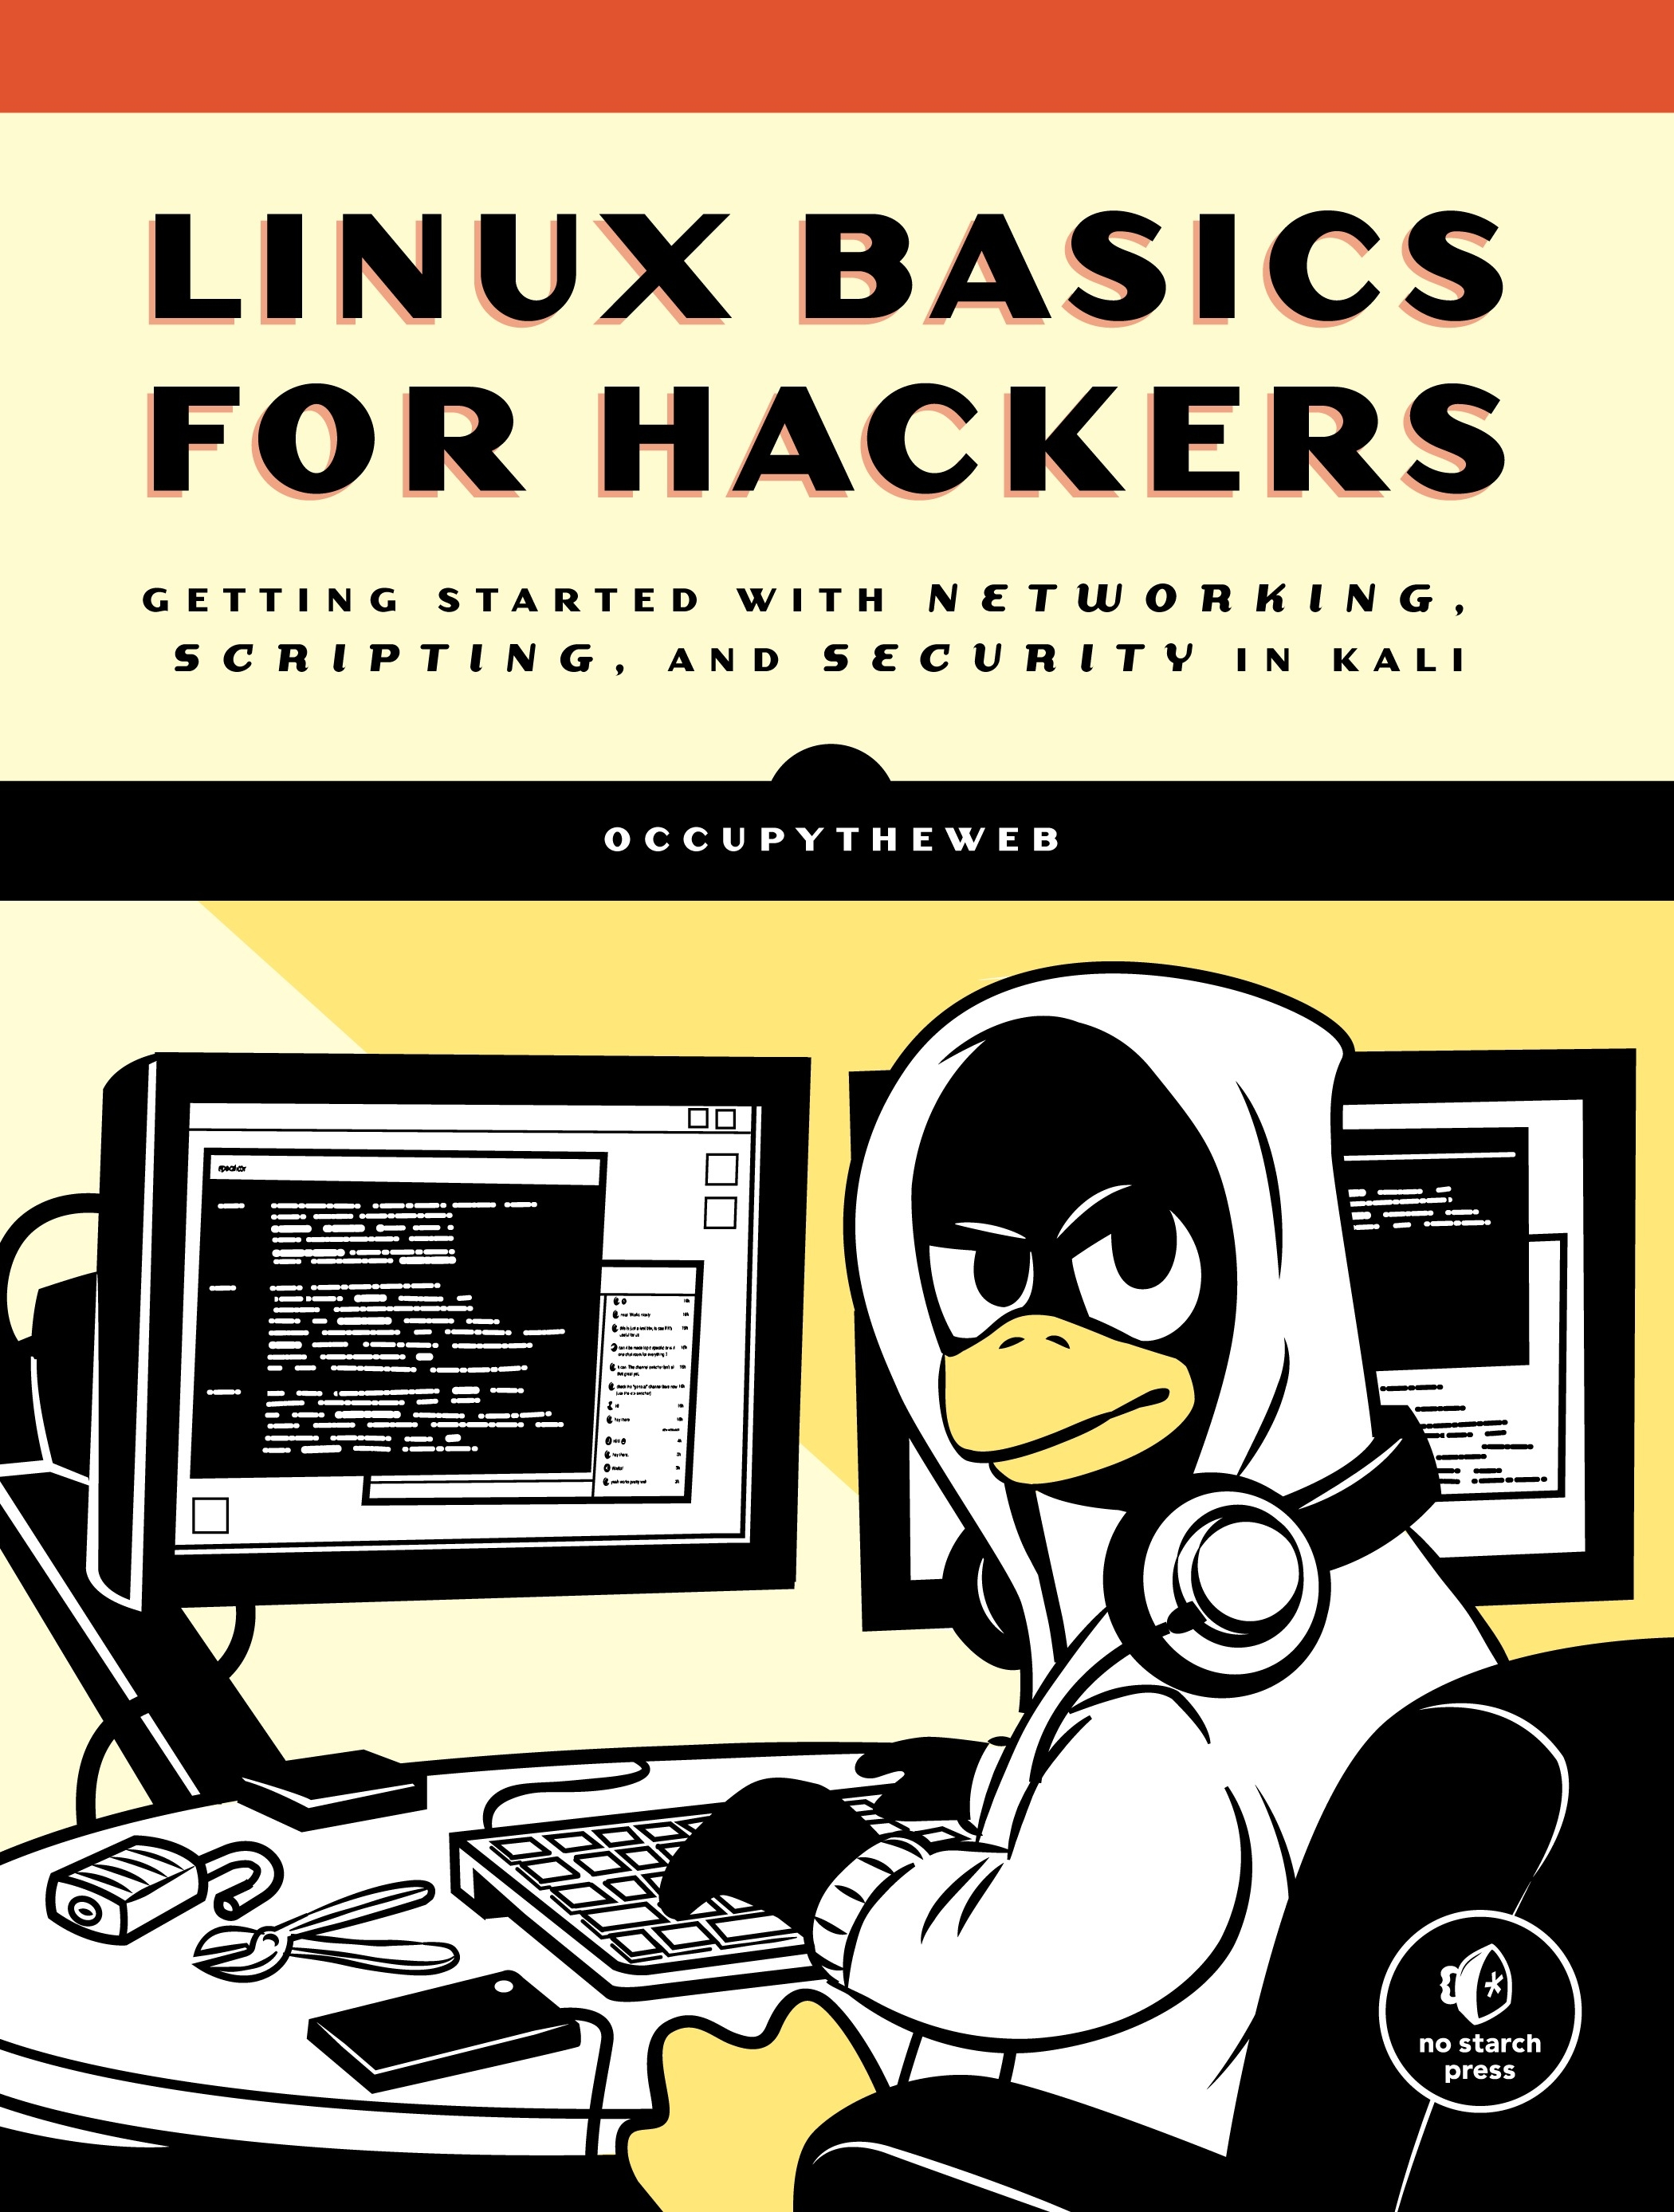 Linux Basics For Hackers by OCCUPYTHEWEB - Penguin Books New Zealand